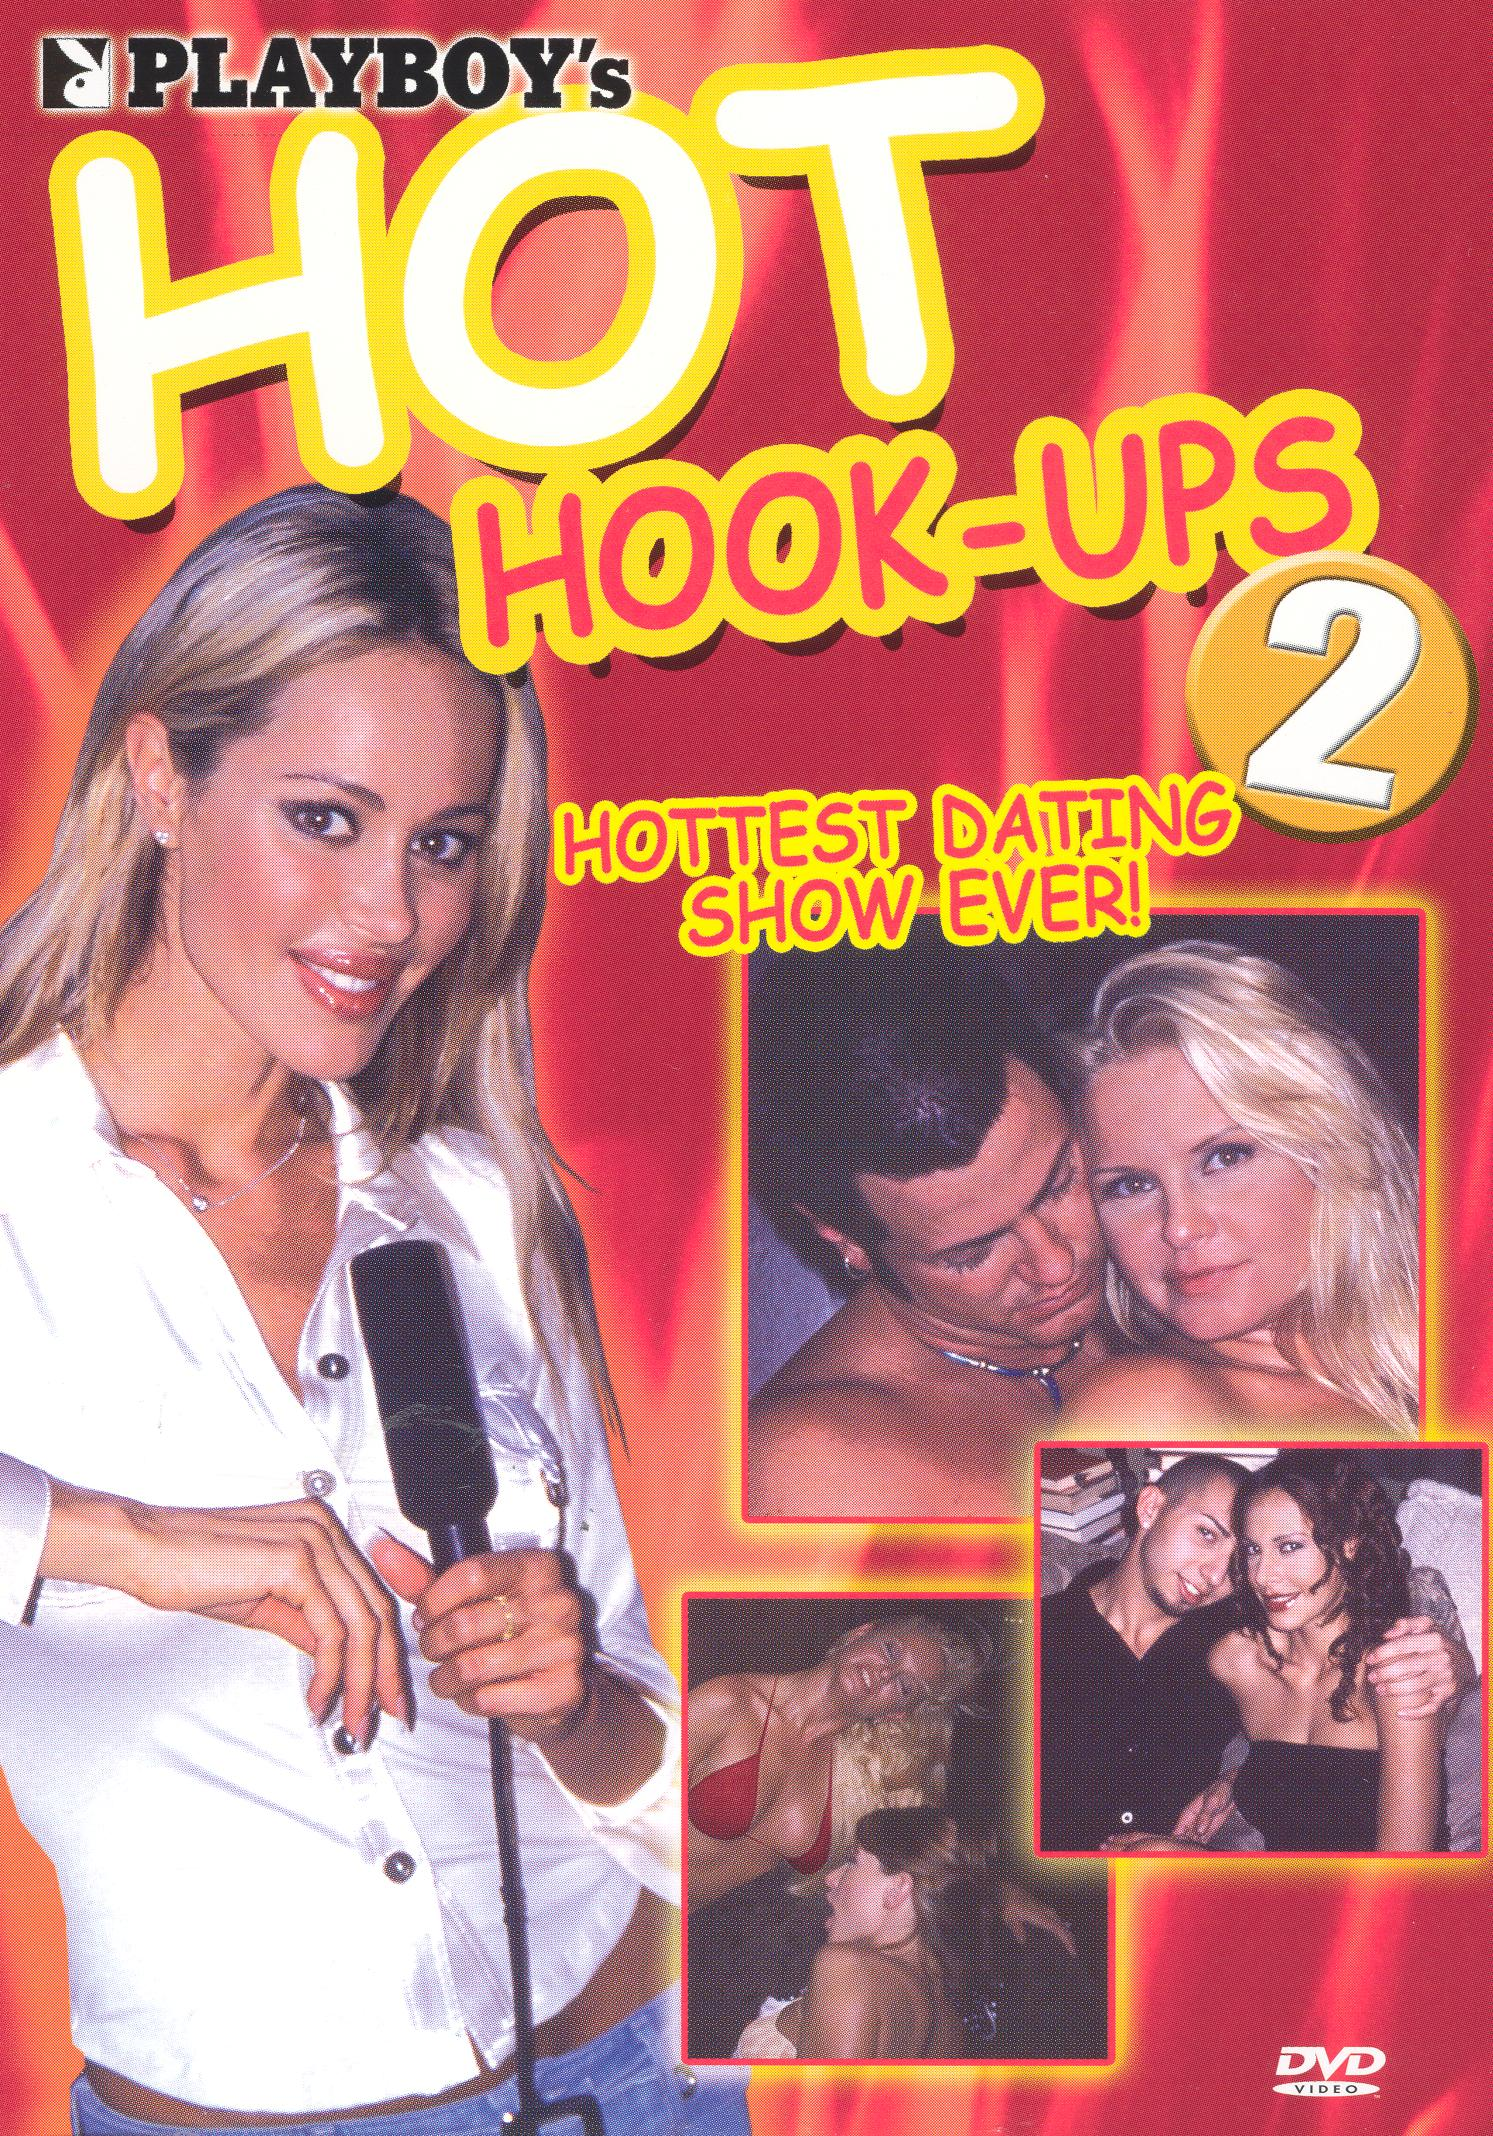 Playboy TV: Hot Hook-Ups 2